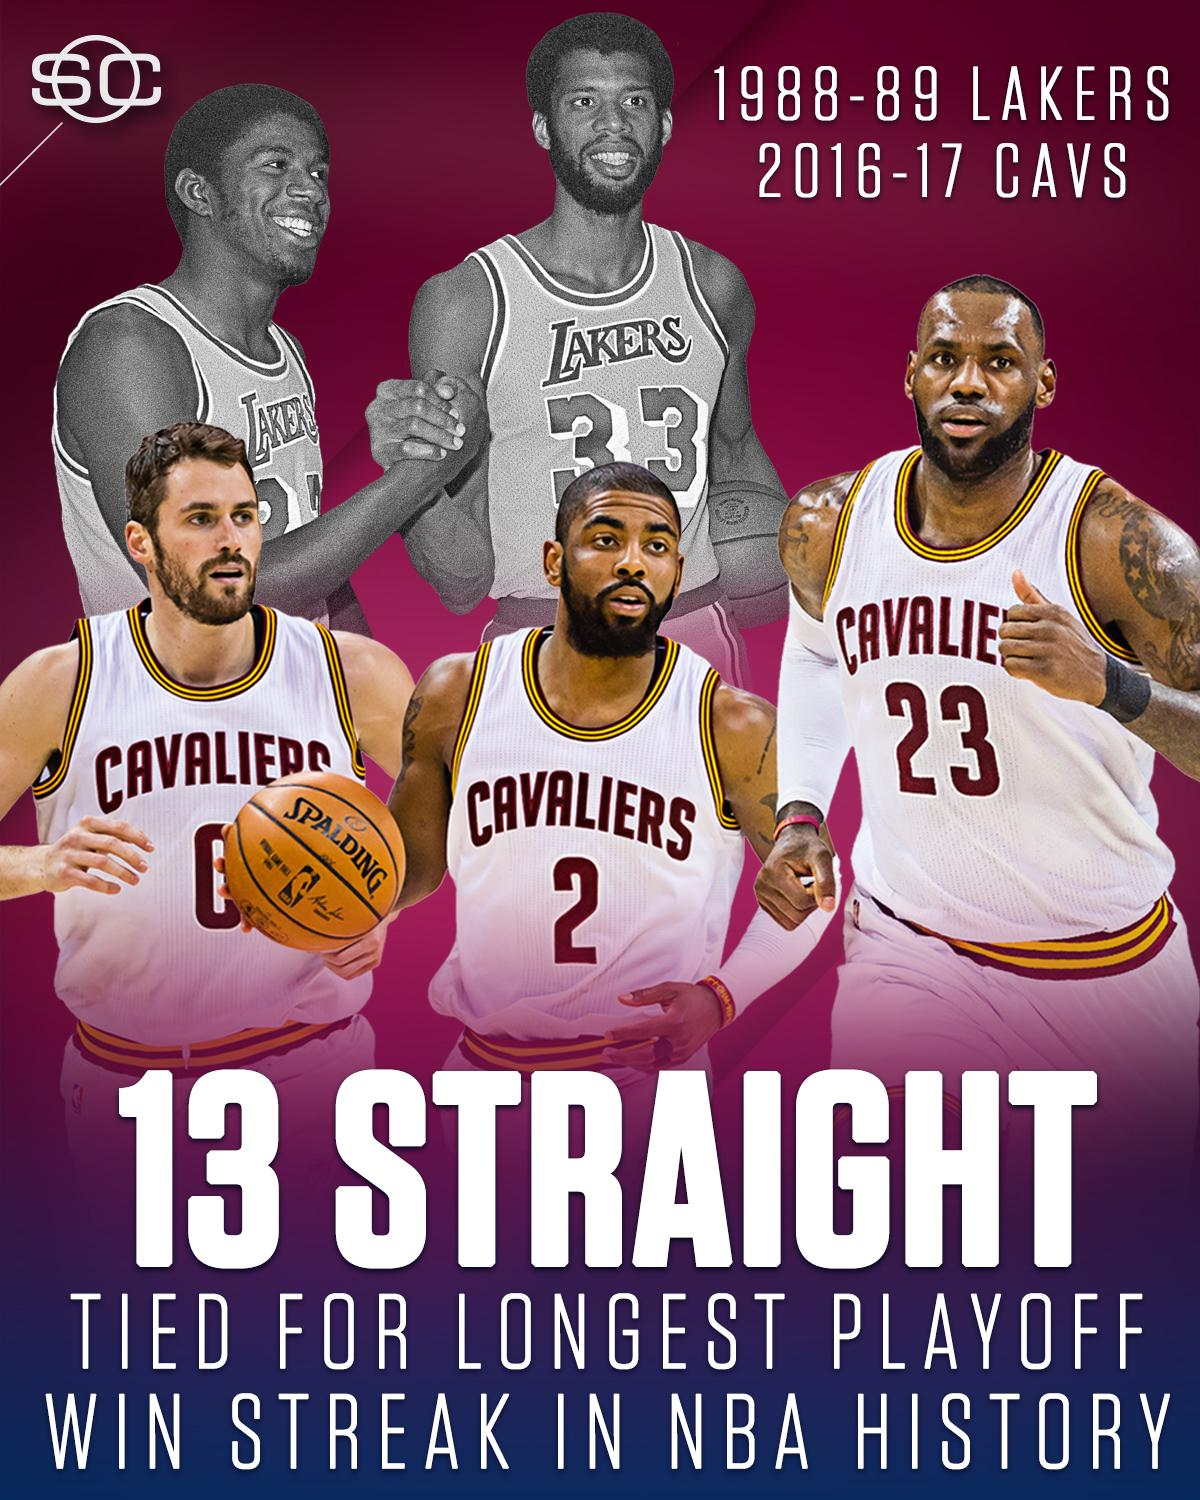 The Cavs are one win away from history. https://t.co/ilWbvE0CFE